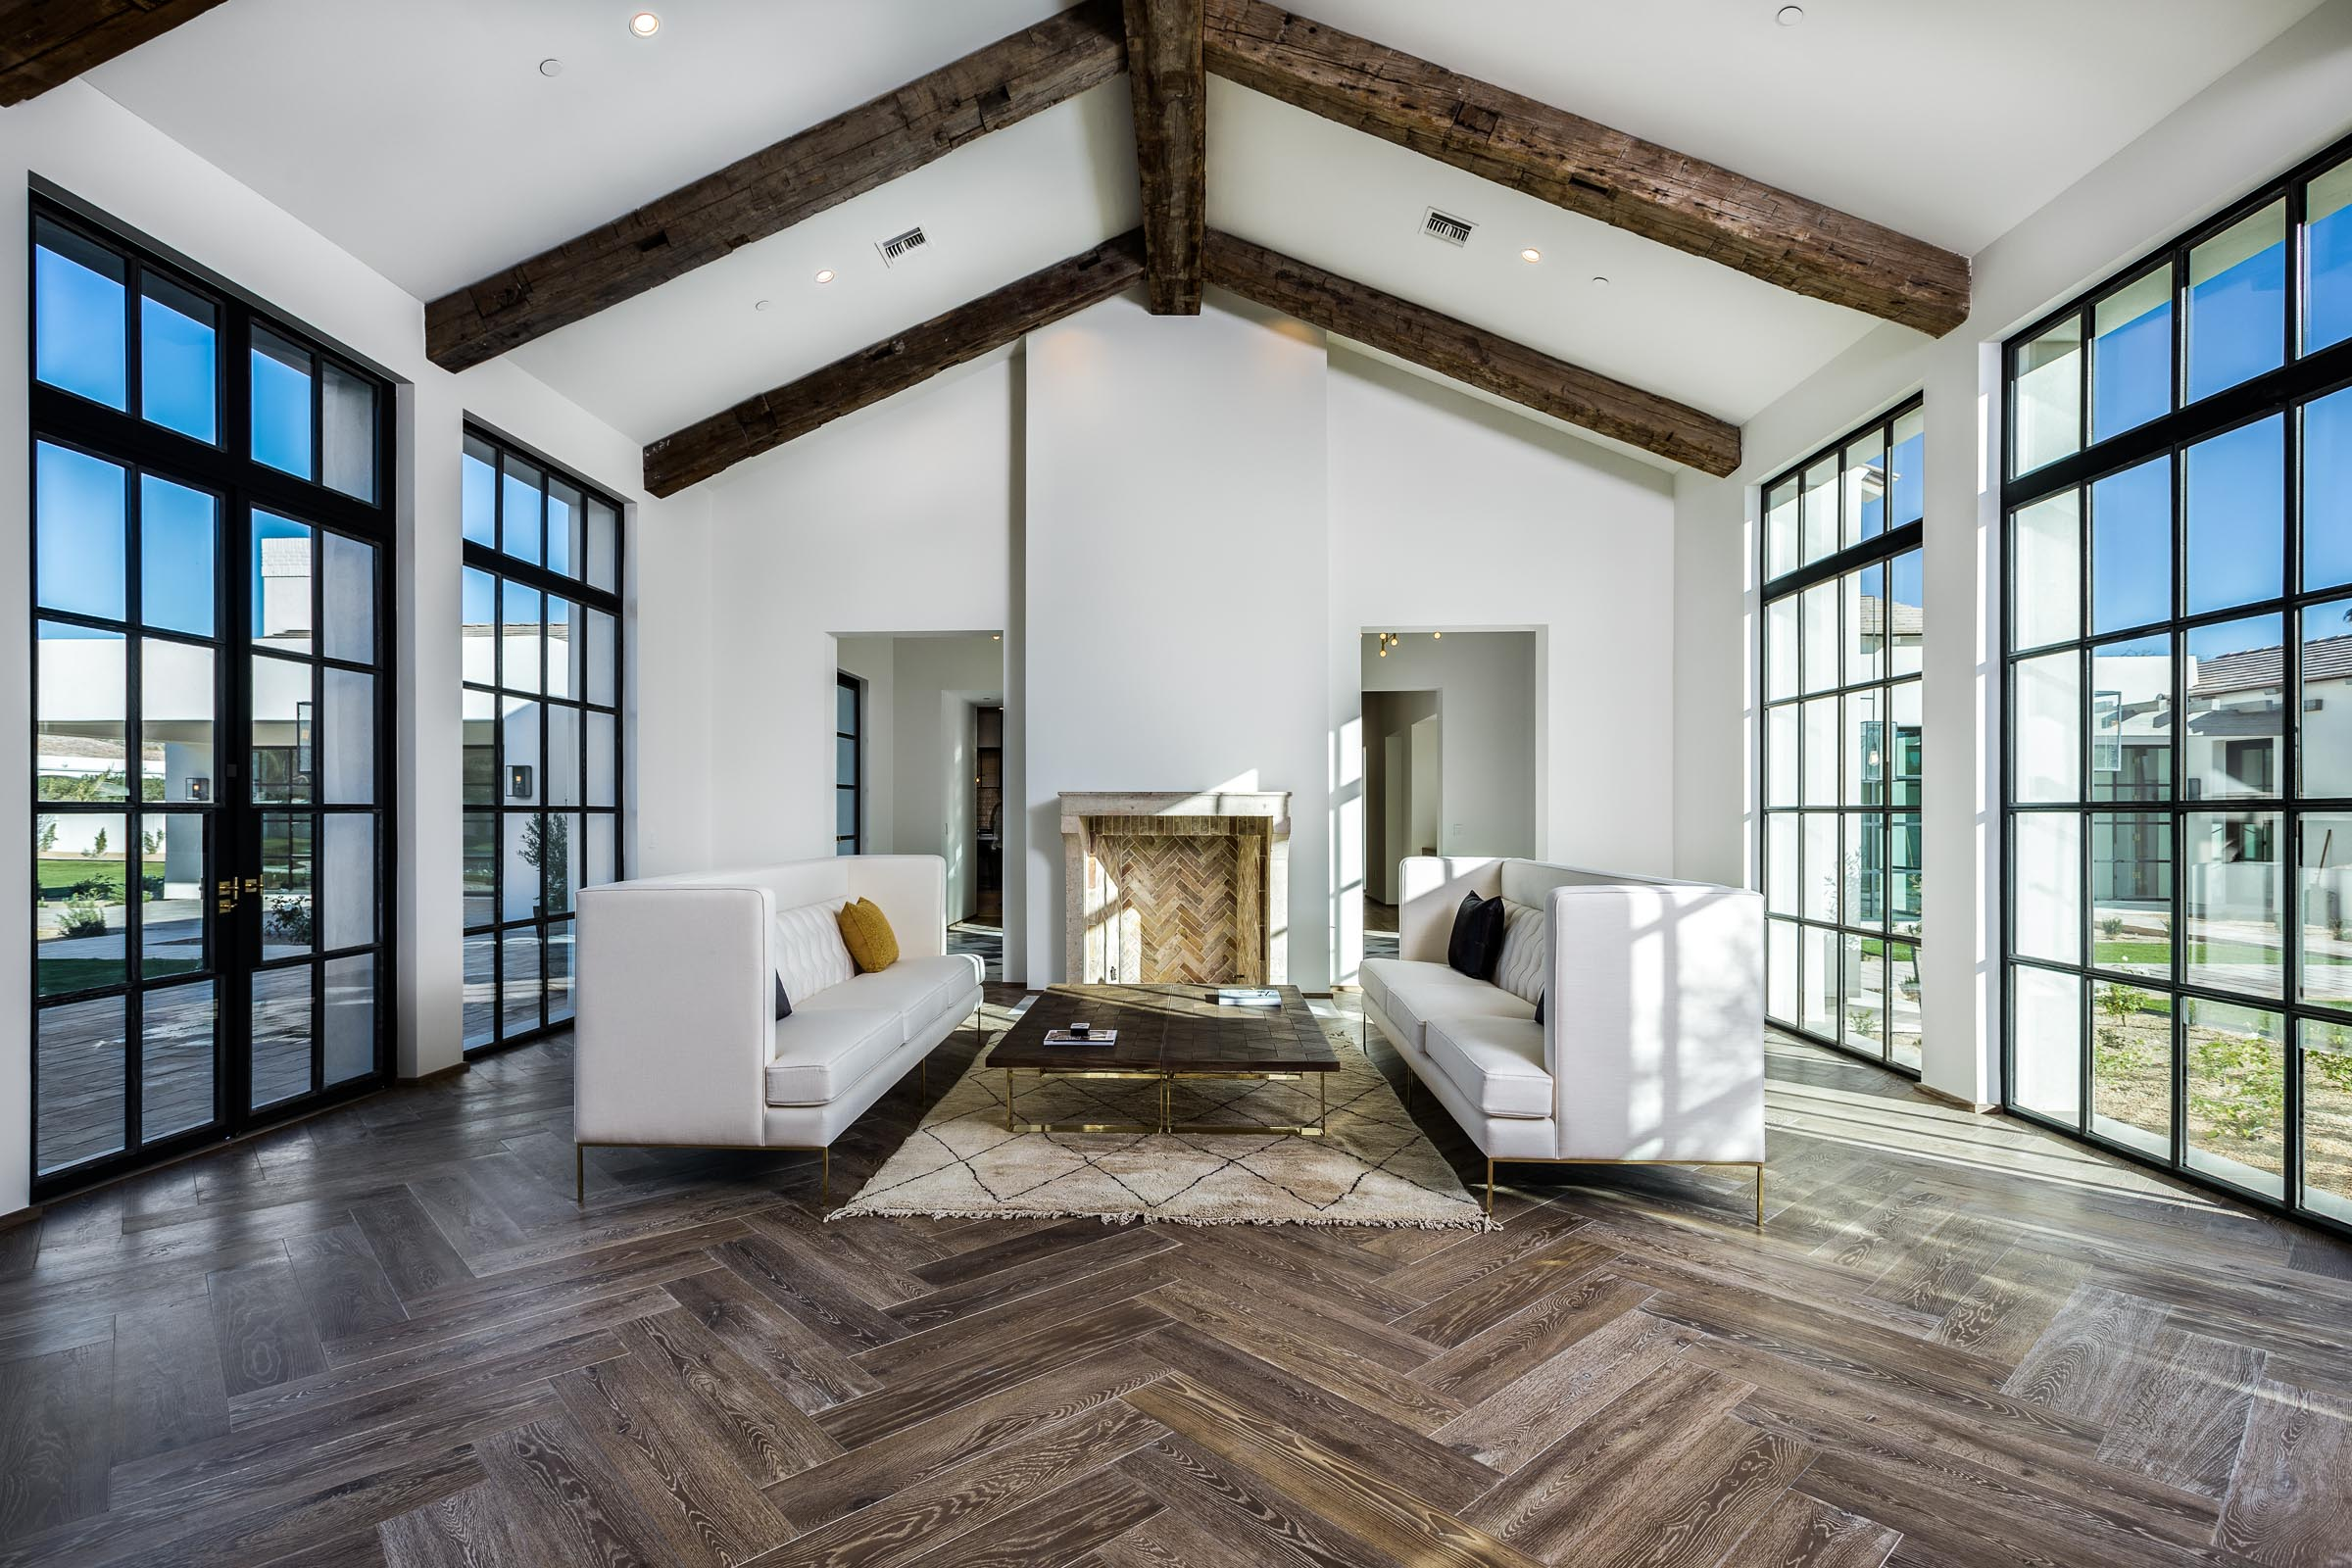 Interior Design Scottsdale Arizona Architectural DRufer Photography 2